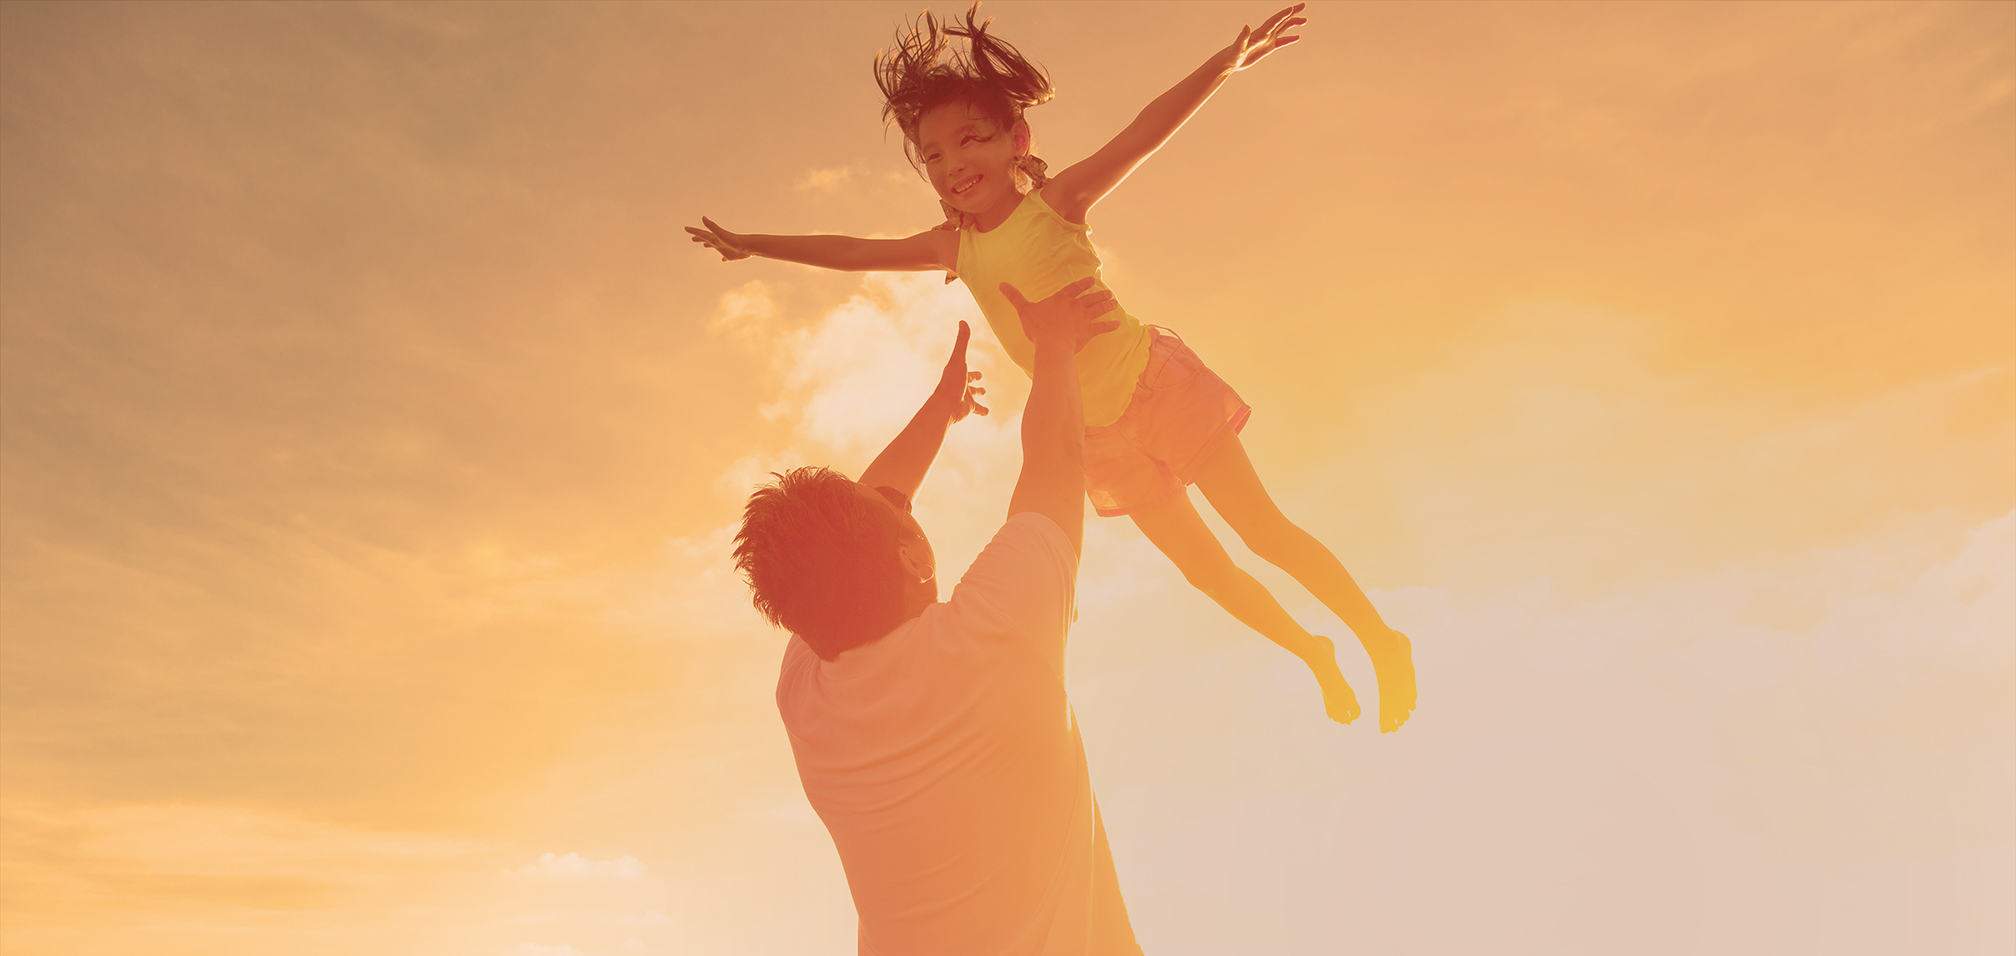 dad throwing daughter into air